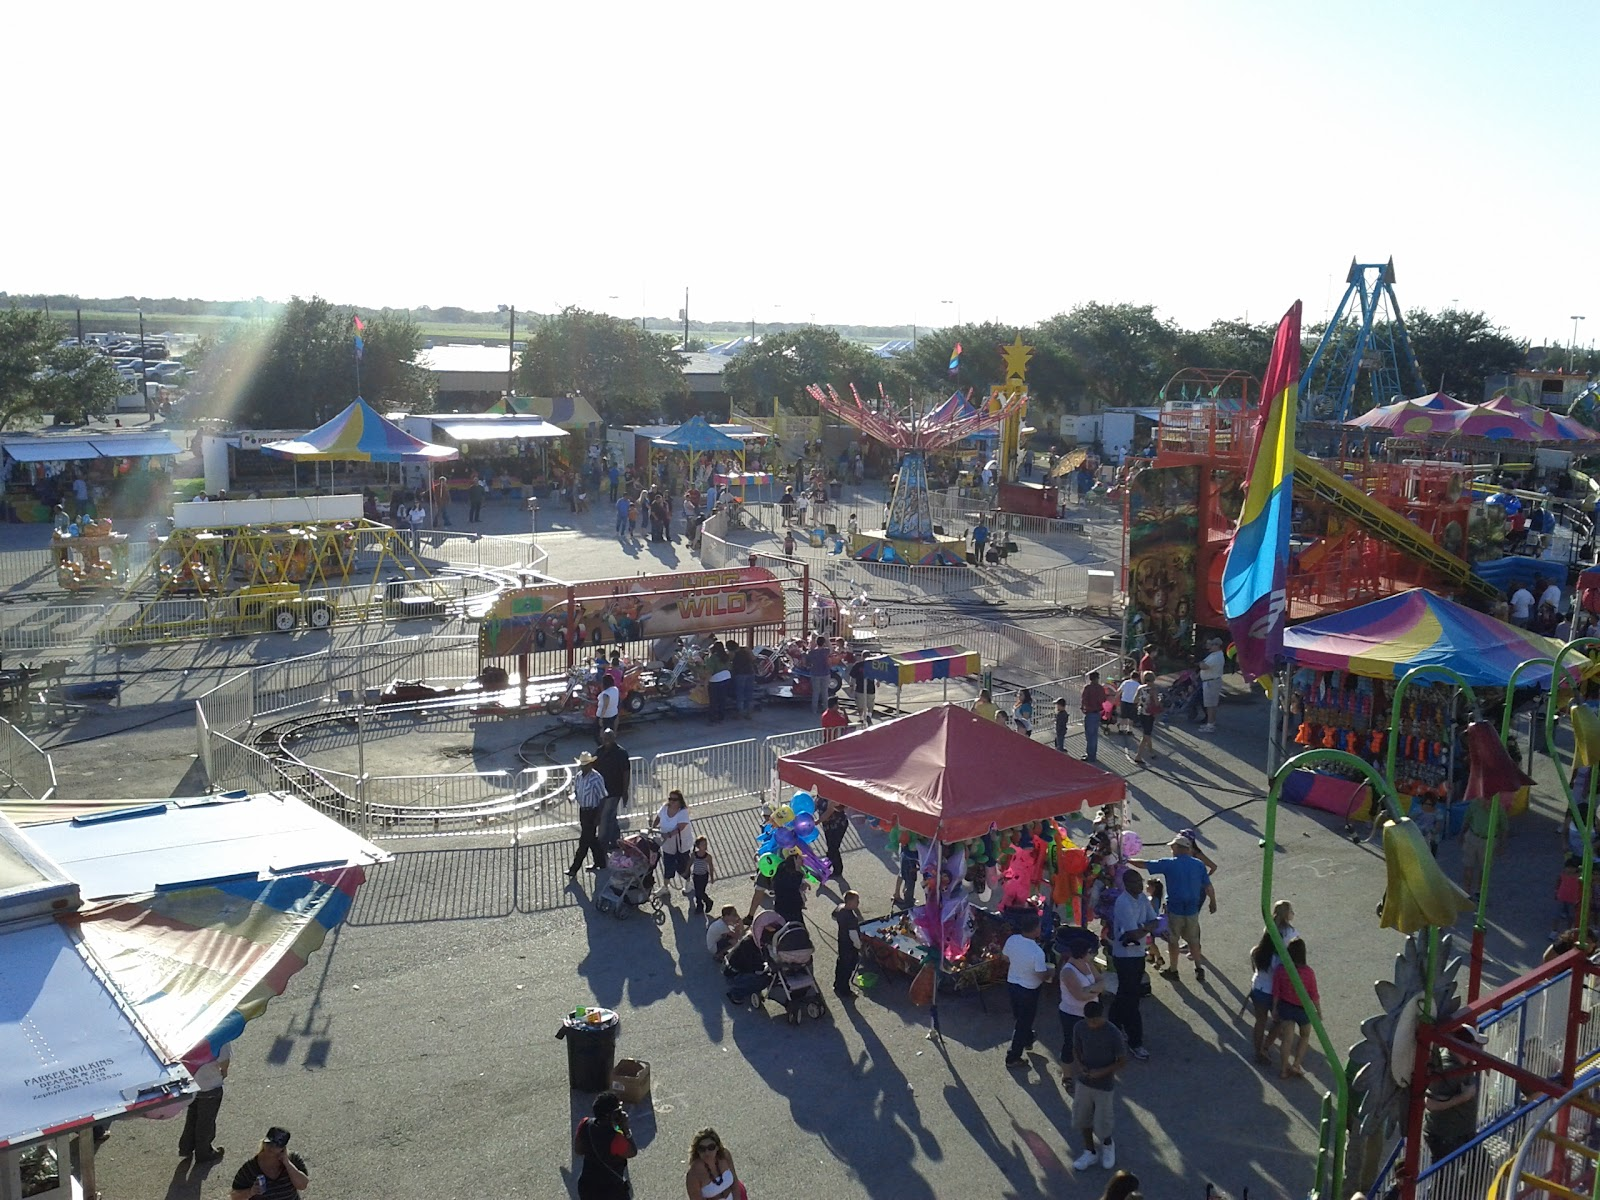 Fort Bend County Fair 2011 - IMG_20111001_174750.jpg